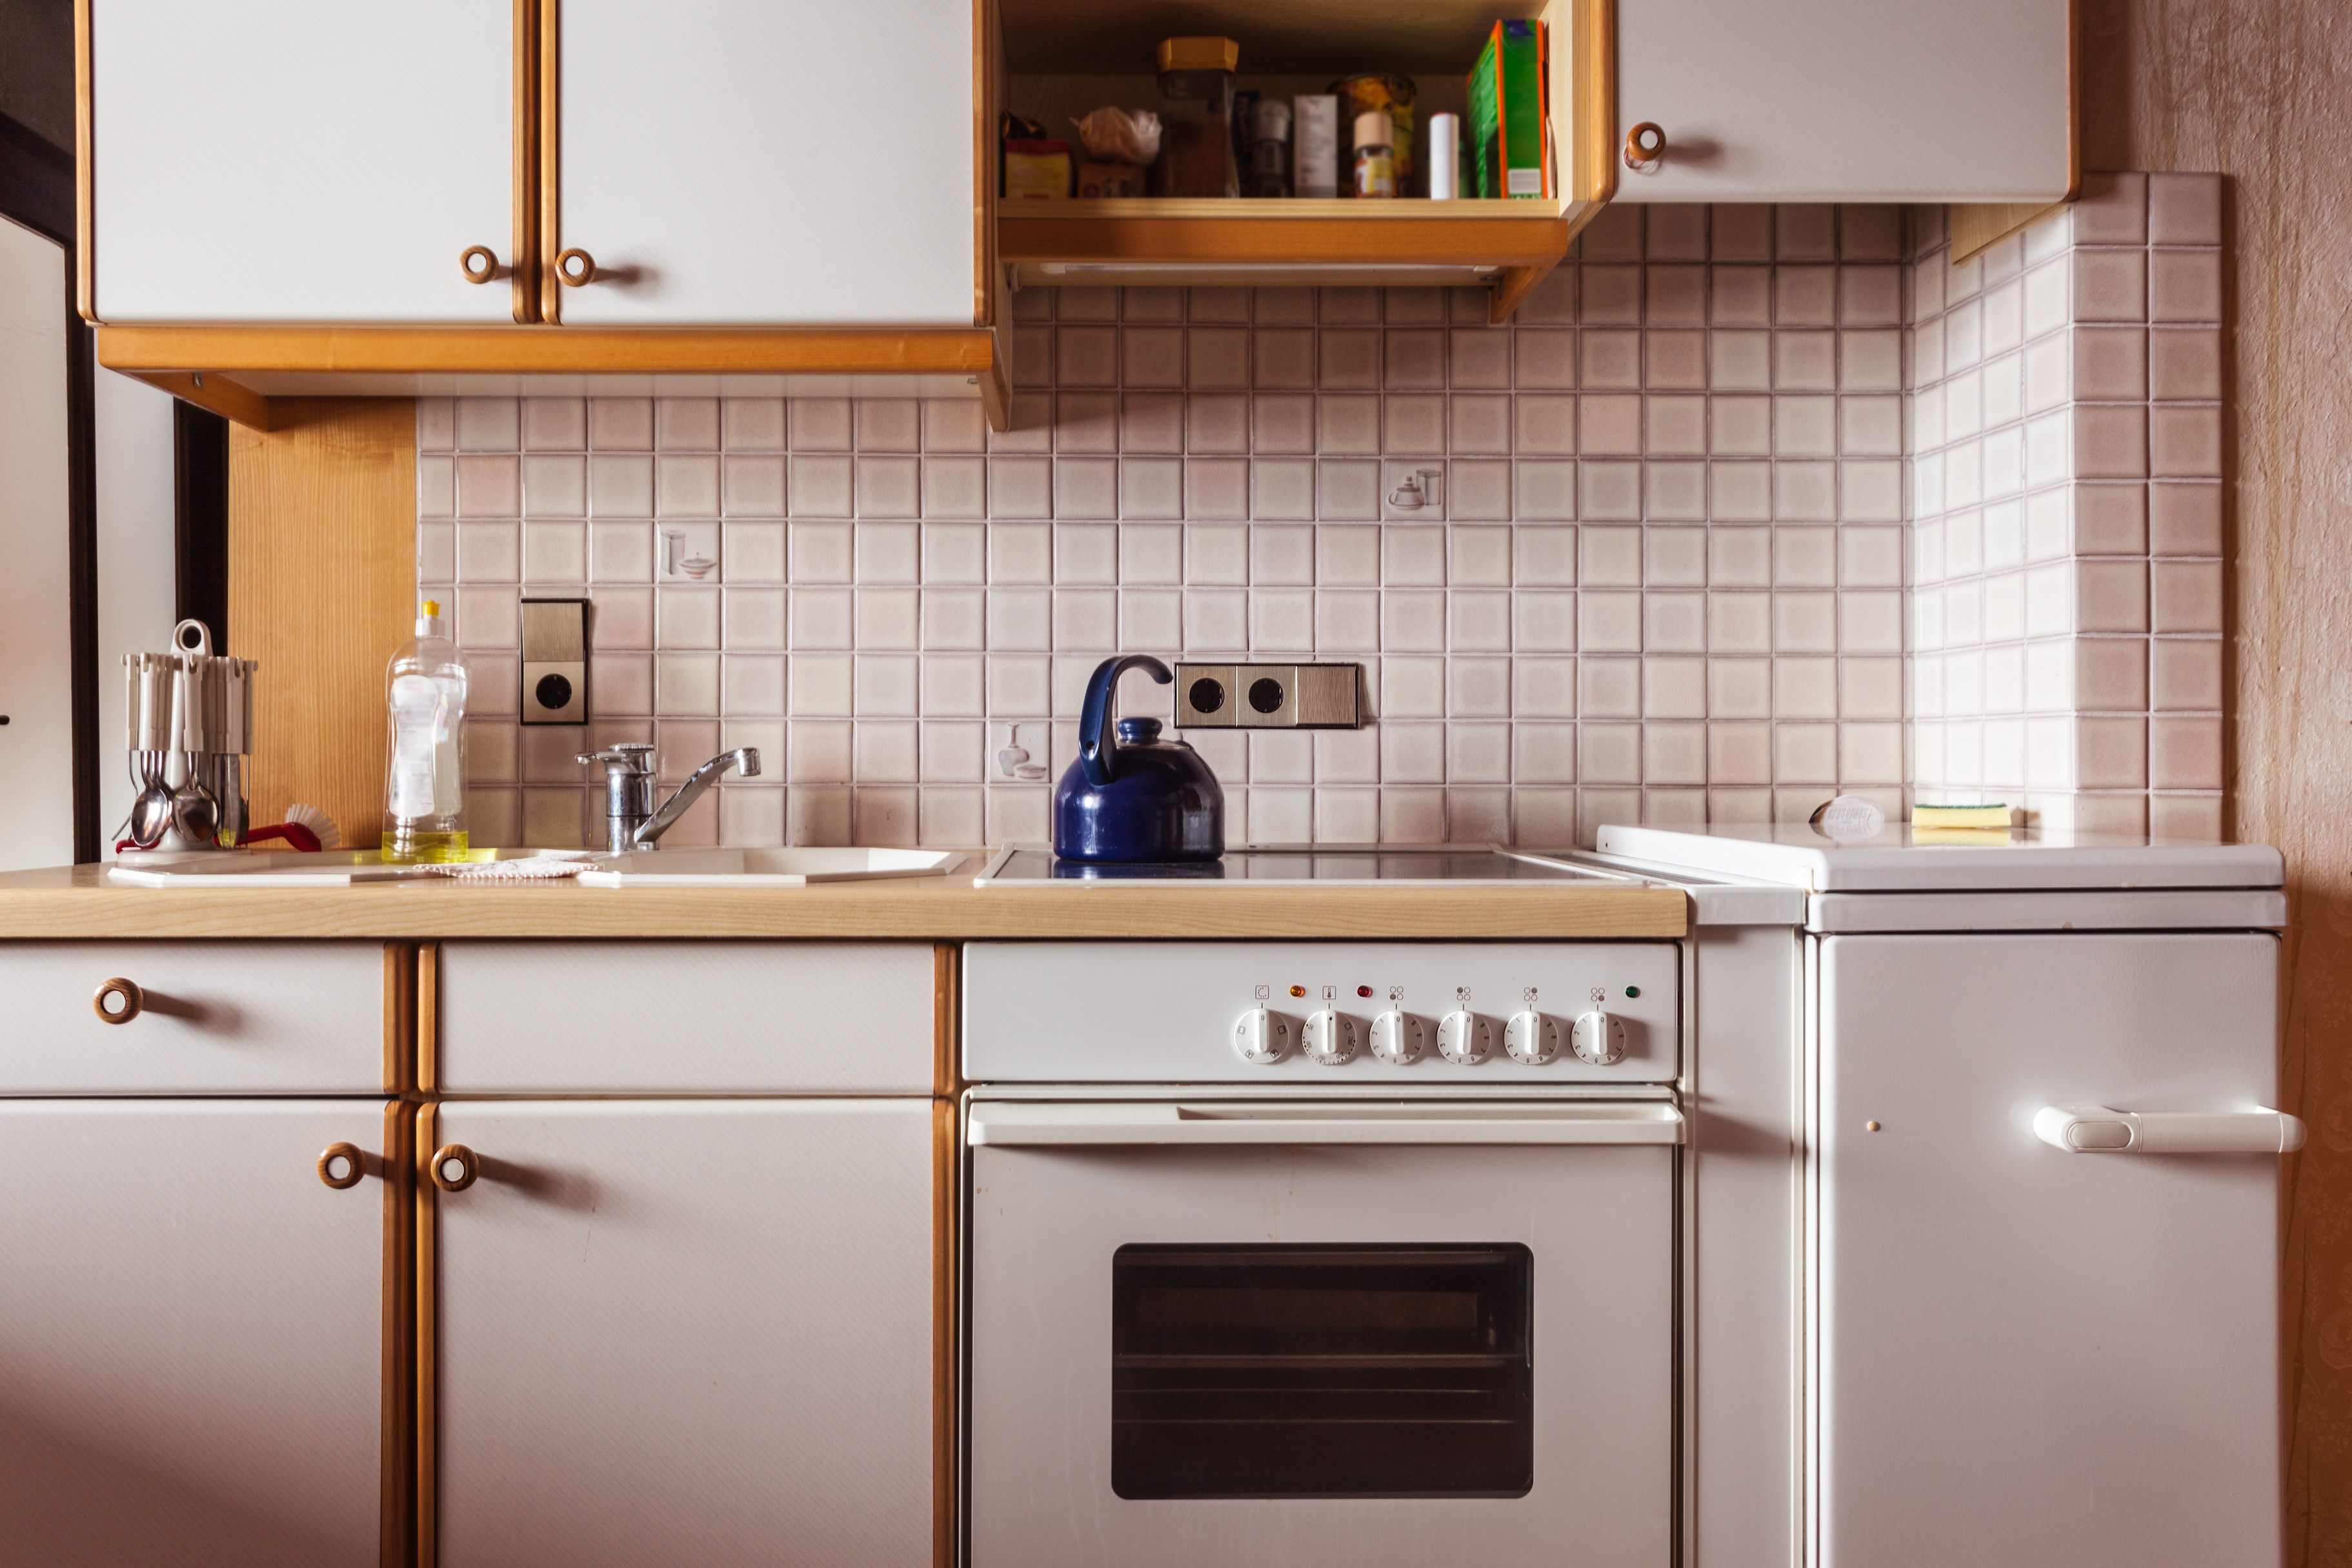 How To Incorporate The Retro Style Appliance Trend Into Your Kitchen Danby